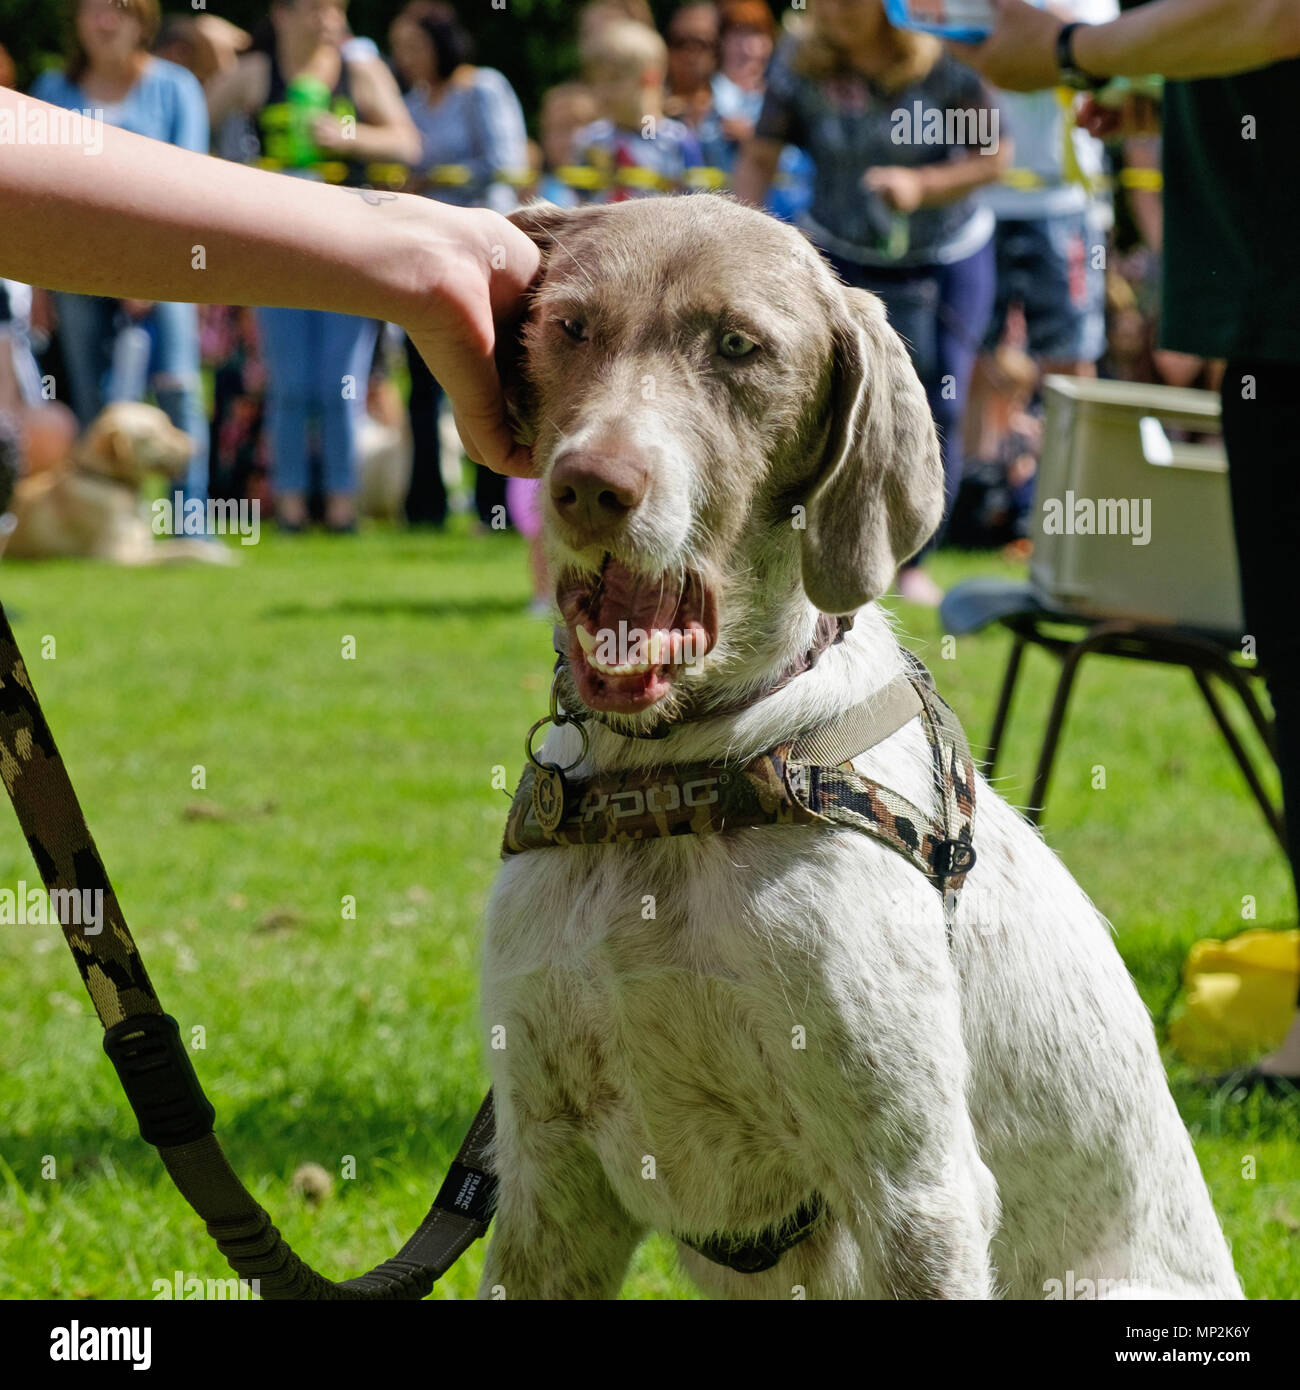 White & Brown dog enjoys  ear scratch from owner at dog show in Canons Park, Edgware, North London, during annual Family Fun Day. Square. - Stock Image